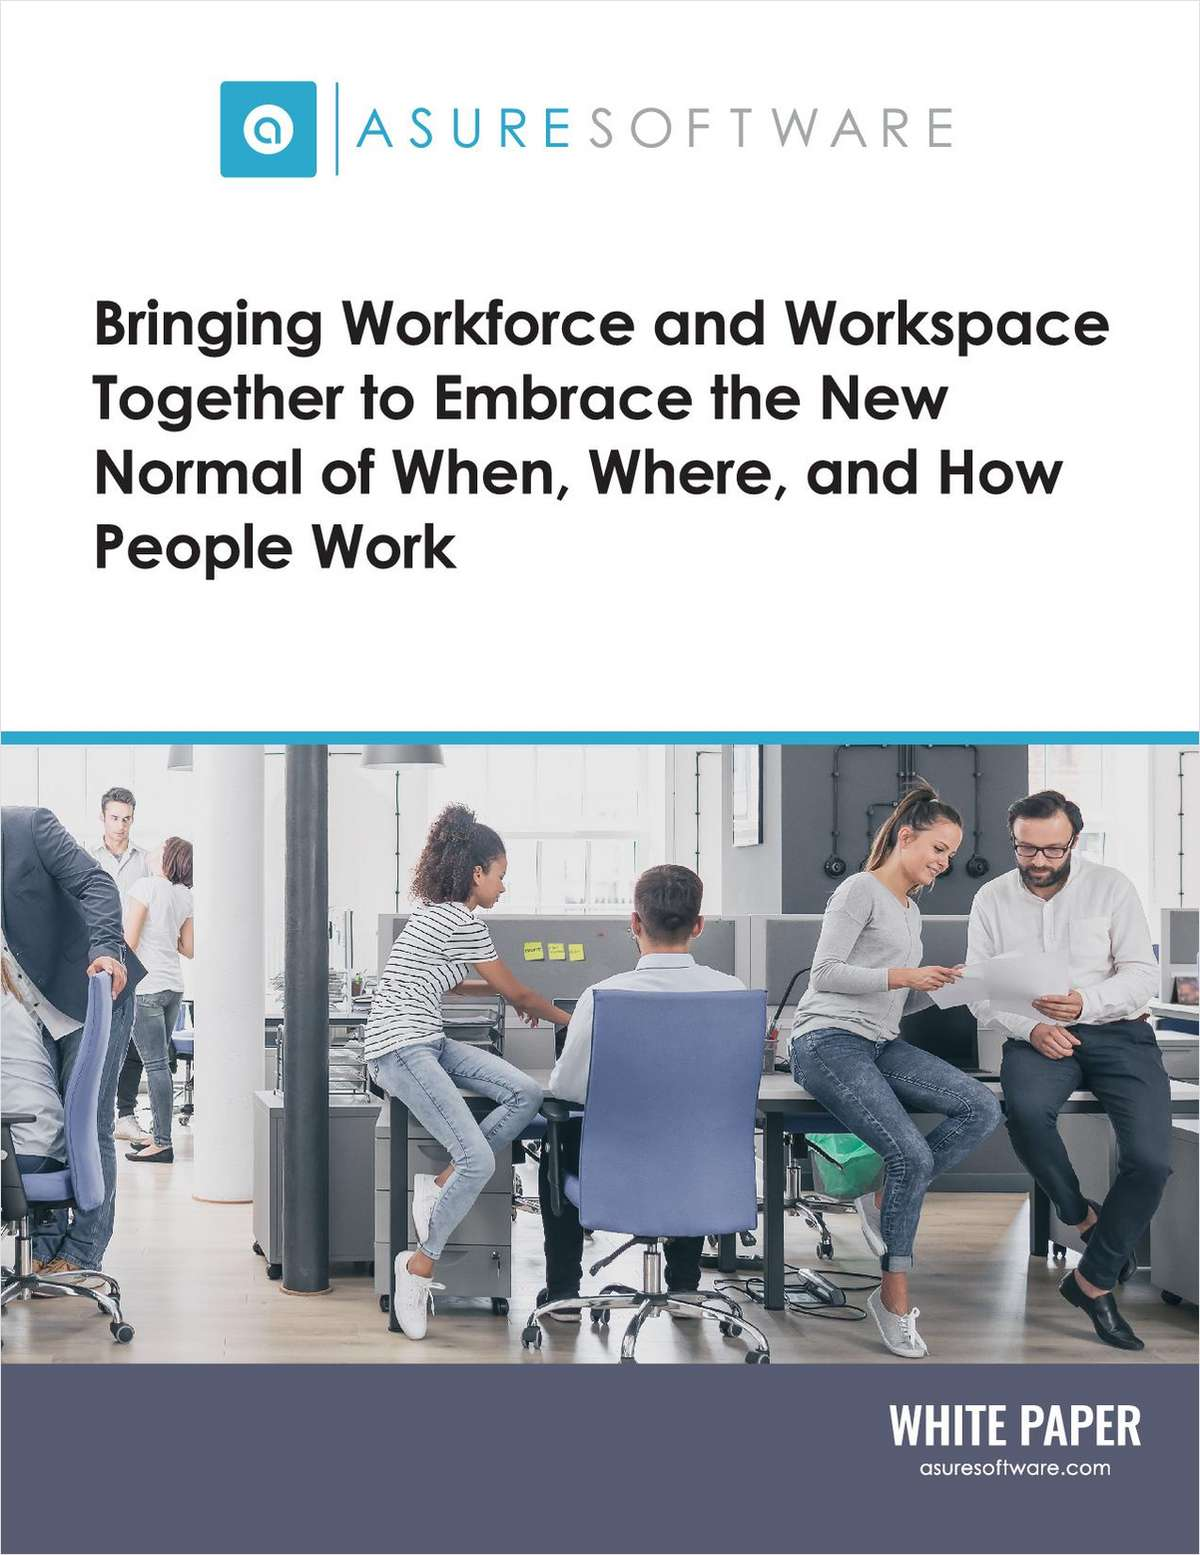 The Convergence of IT, Real Estate, and HR